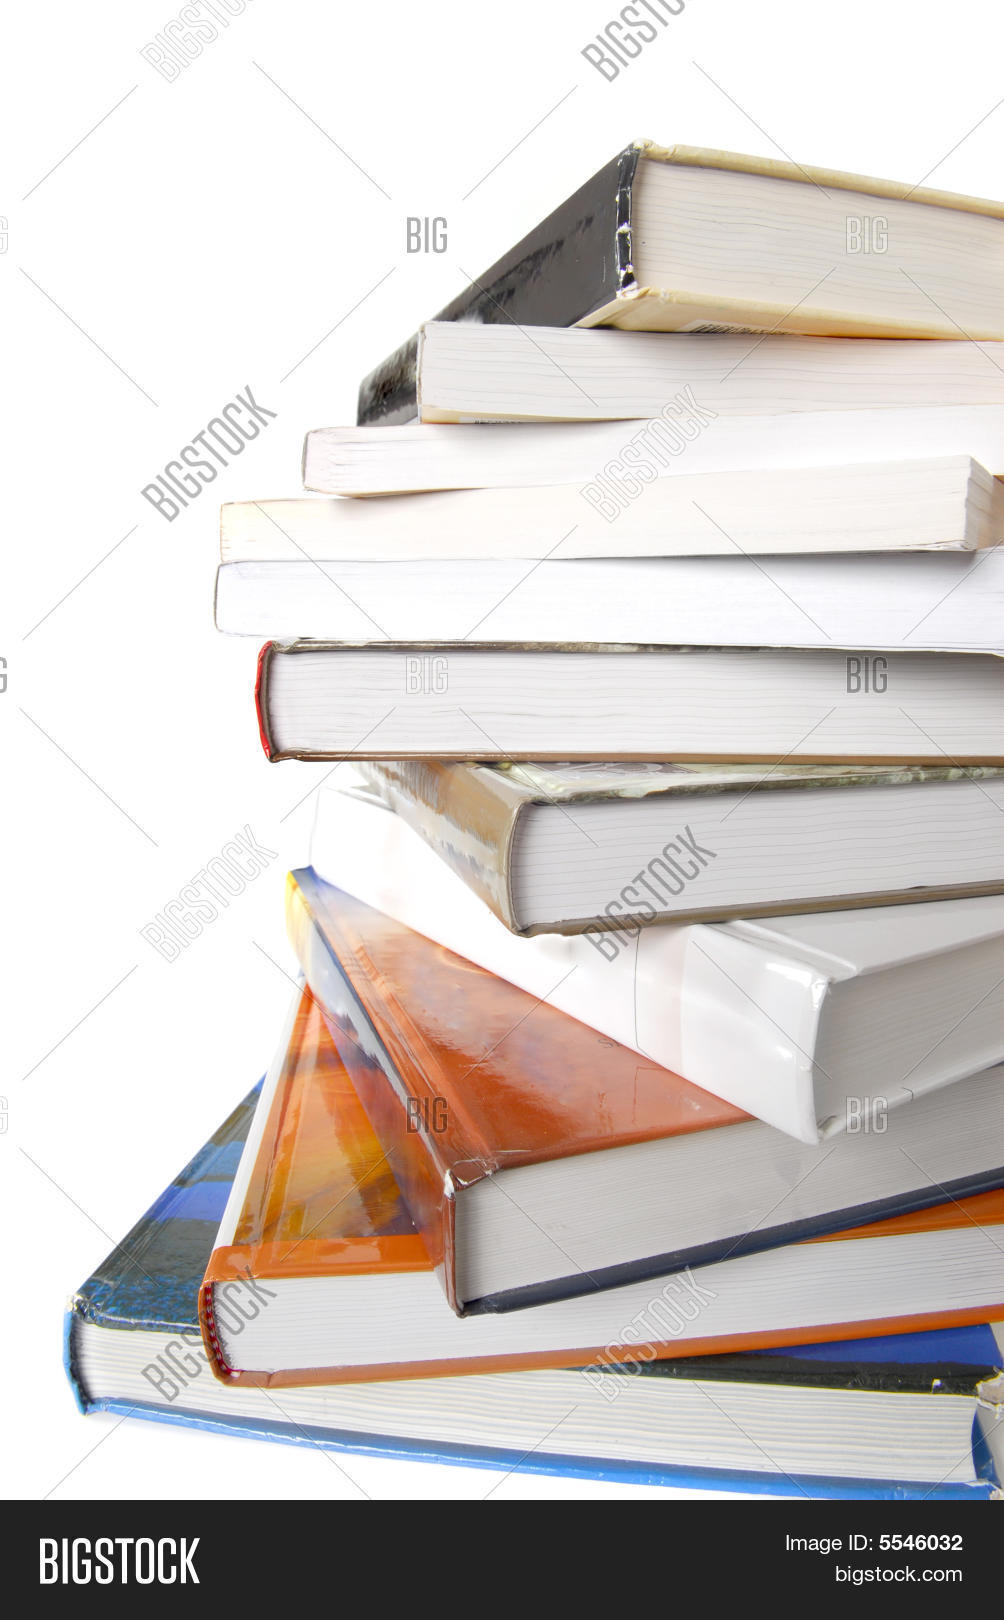 book,close up,data,educate,education,information,literature,pile,stack